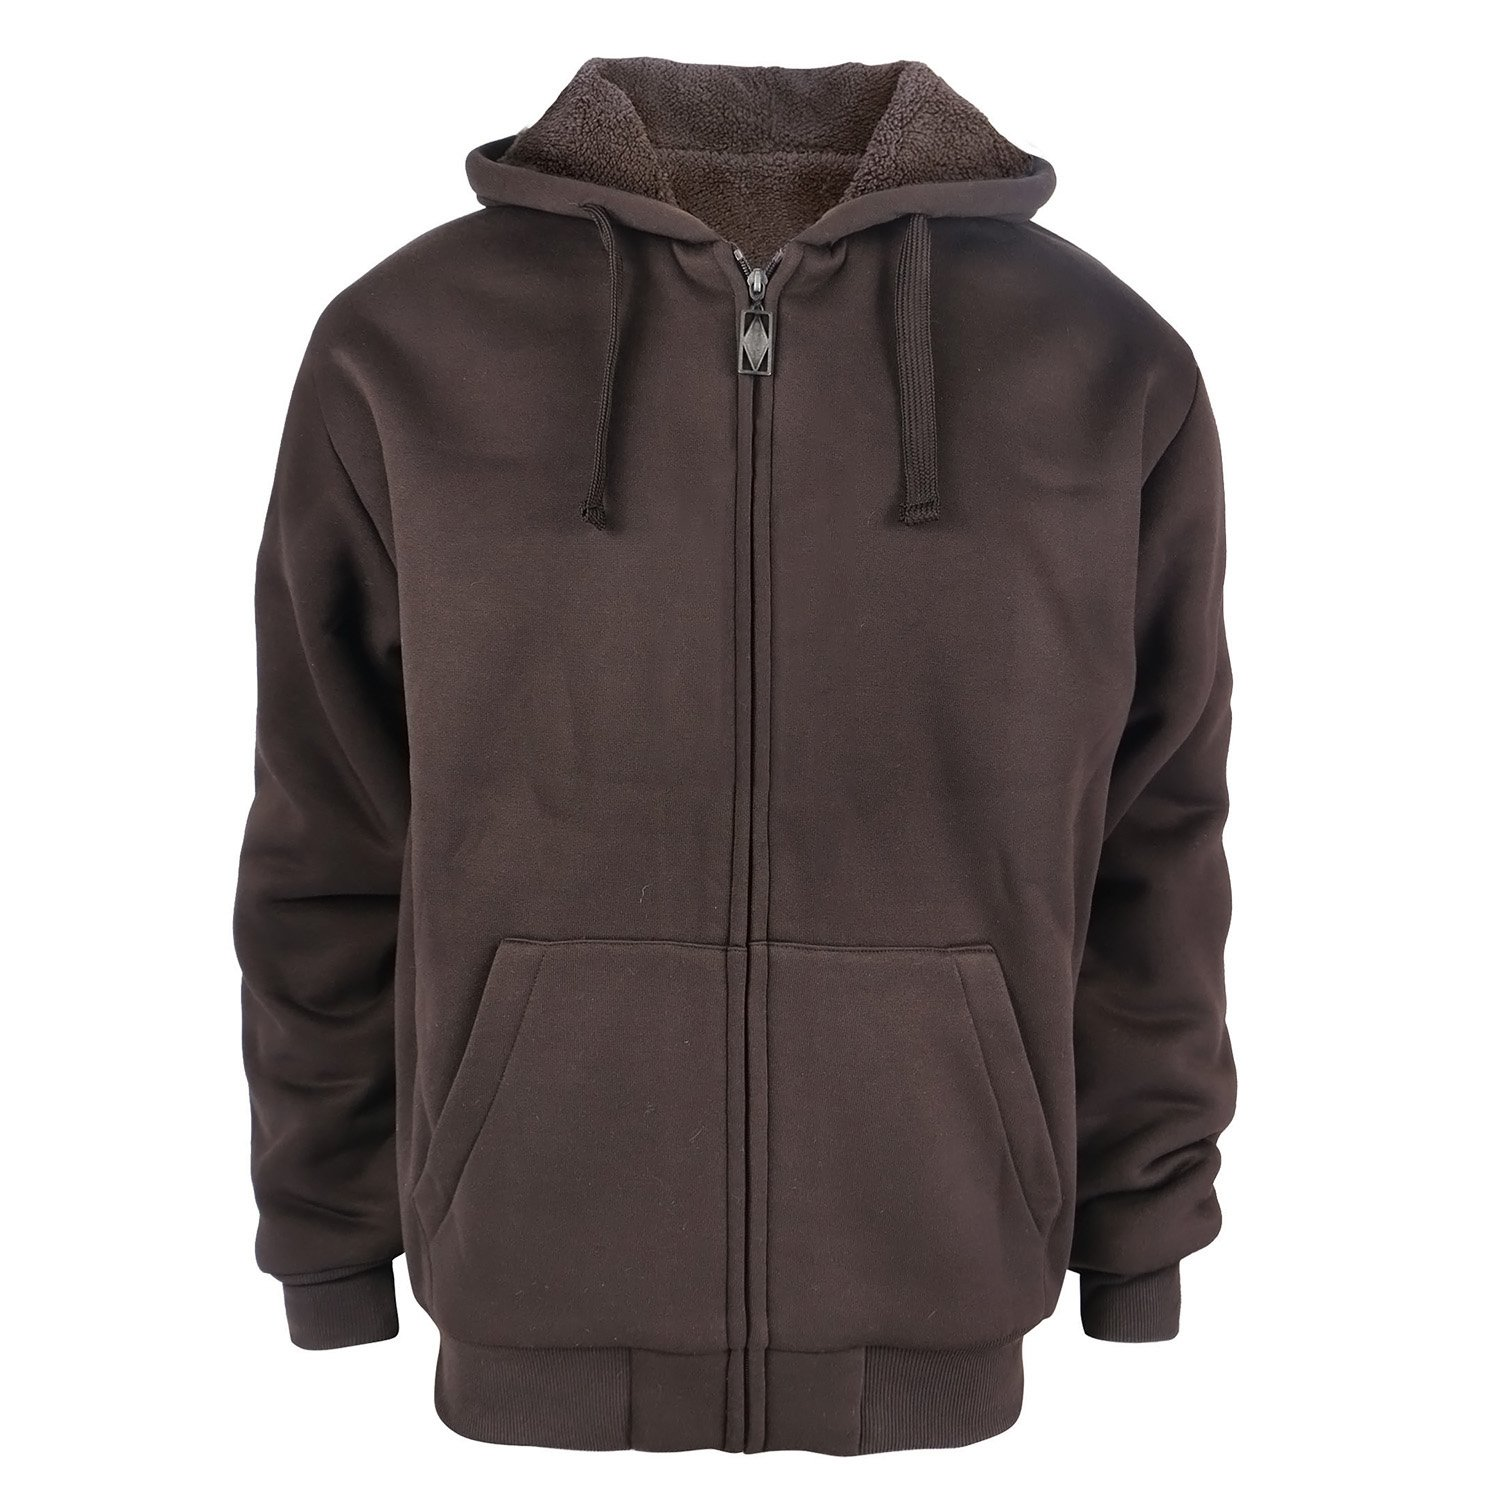 Gary Com Heavyweight 1.8 lbs Full-Zip Sherpa Lined Fleece Hoodies for Men Plus Size 5X Big and Tall Warm Jackets 5XL Coffee